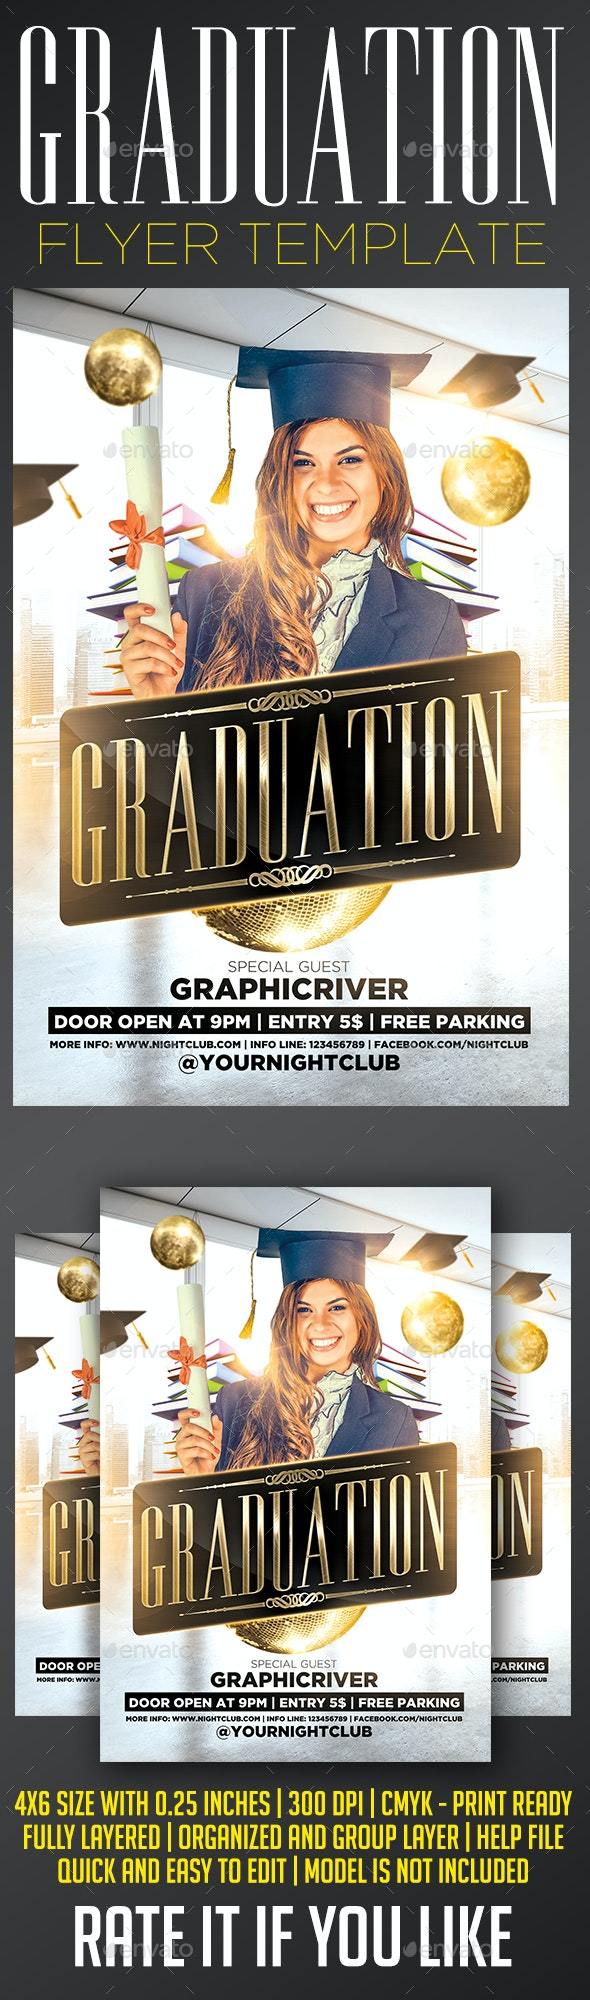 Graduation Flyer Template - Events Flyers